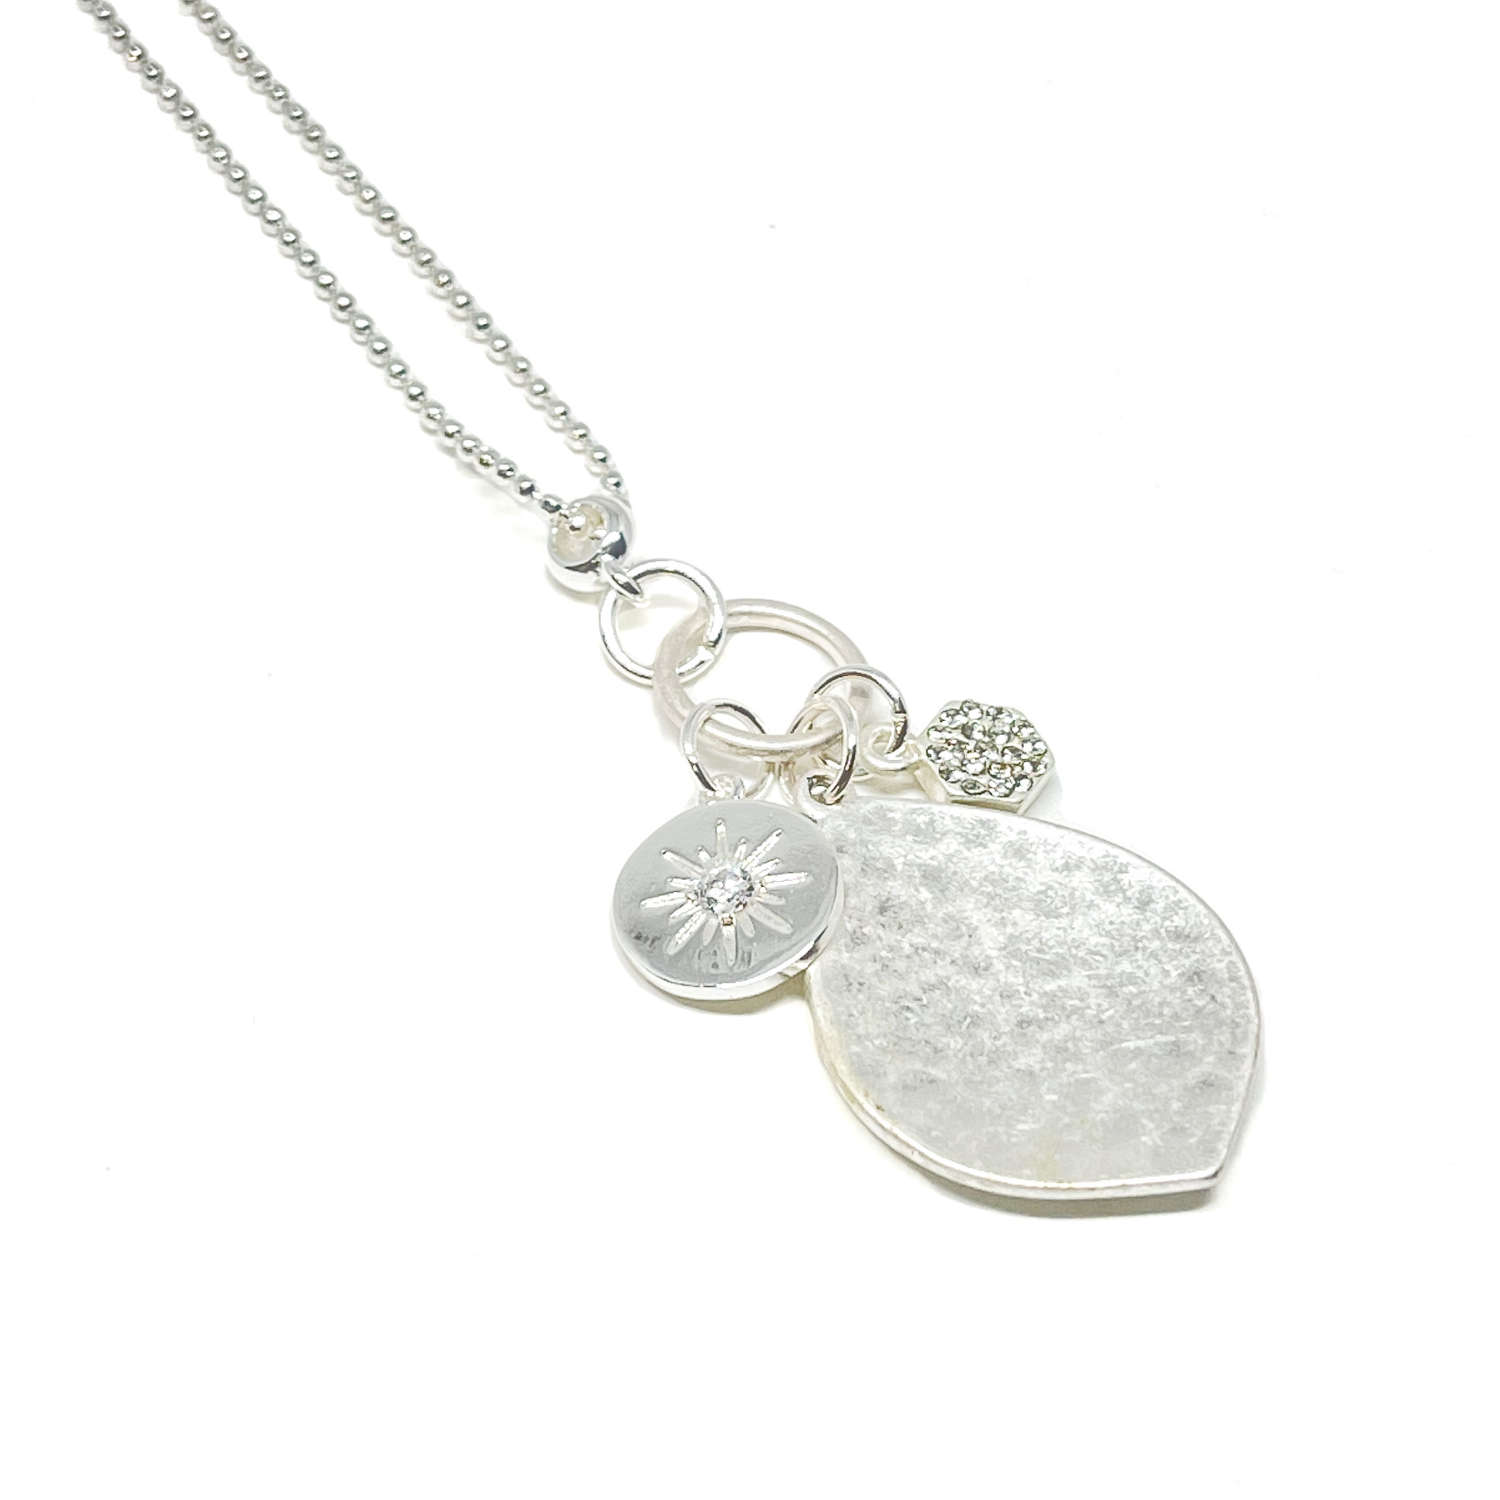 Petra Charm Necklace - Silver